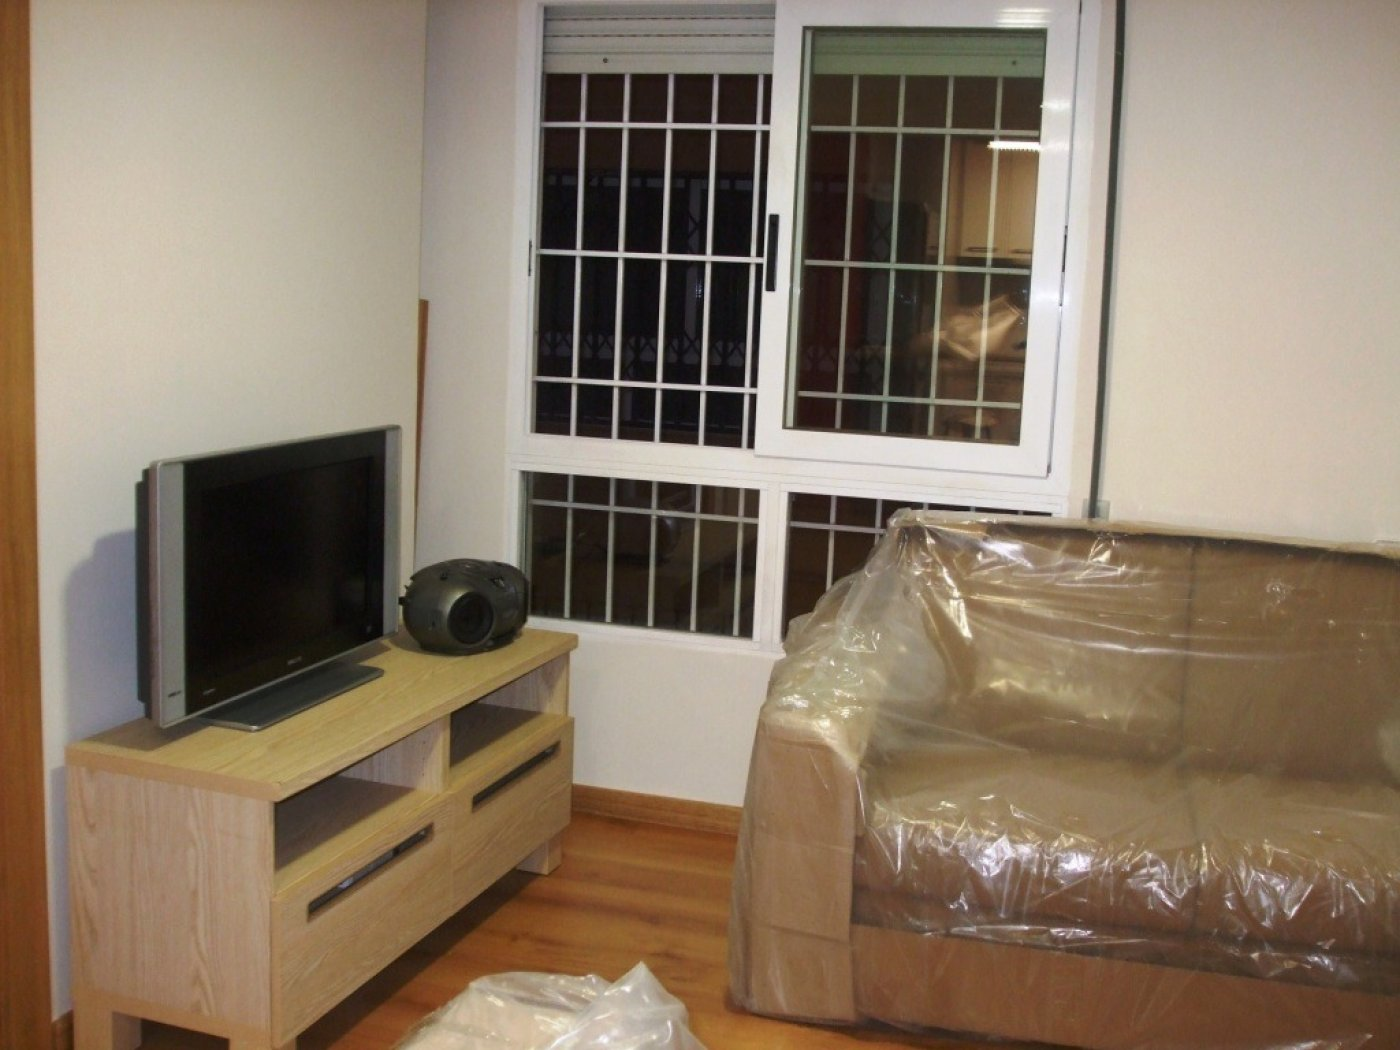 Gallery Image 3 of Flat For rent in Catedral, Murcia